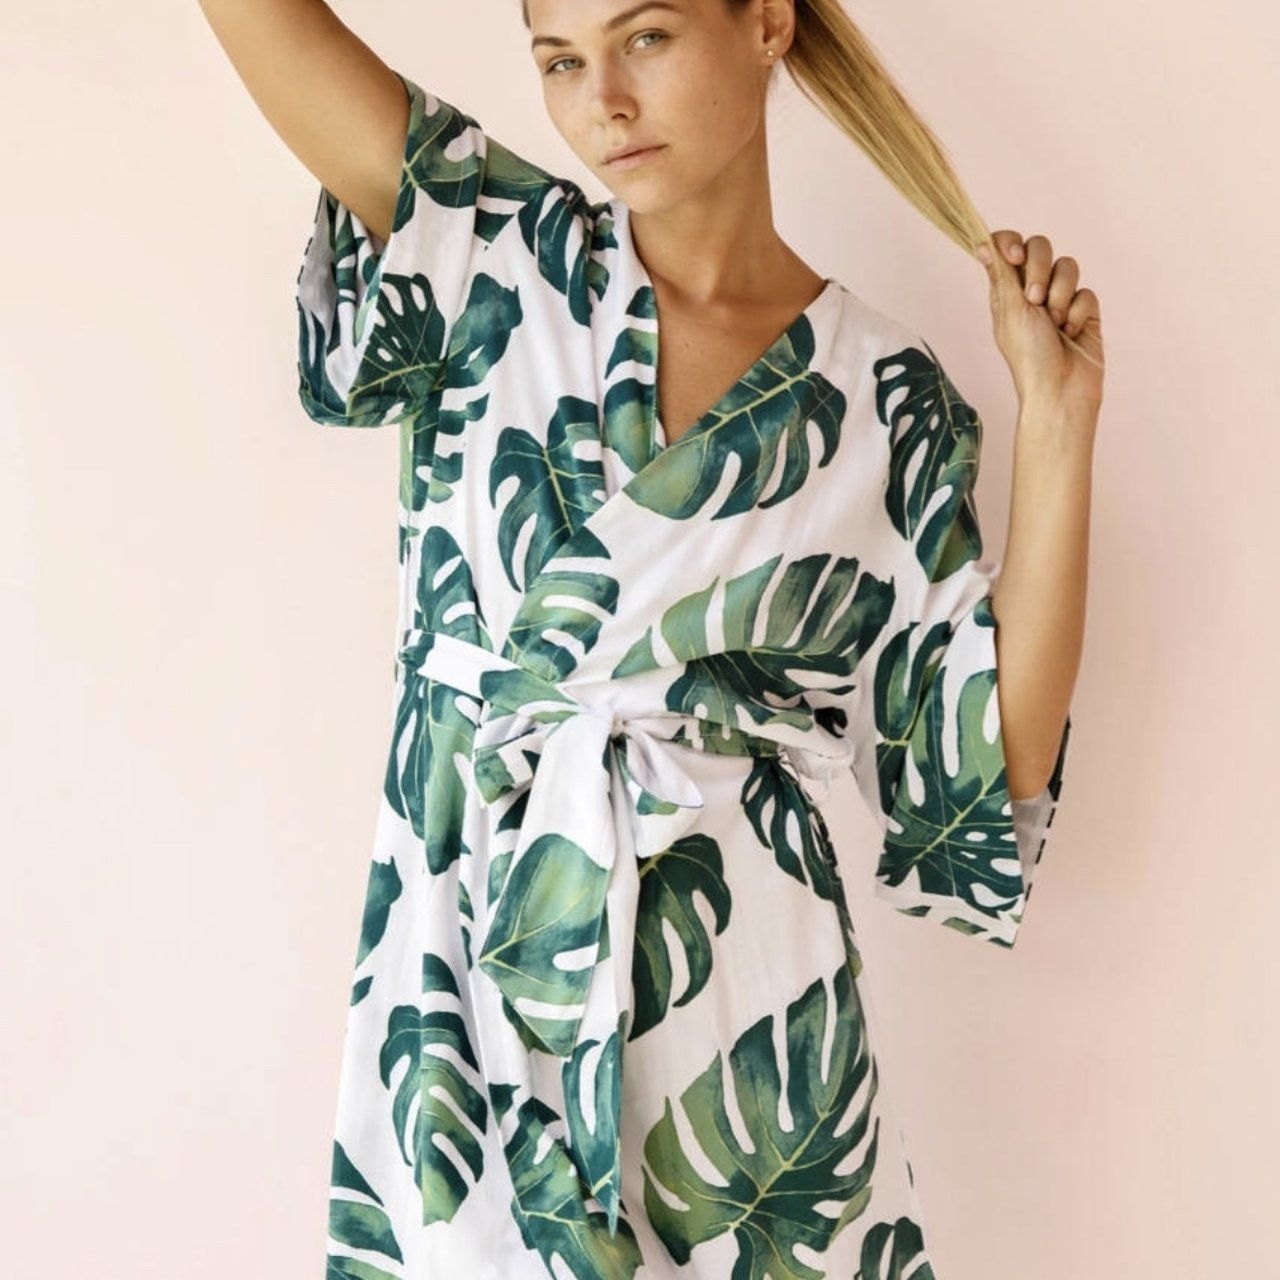 Botanical, tropical palm print robe. Light weight fabric